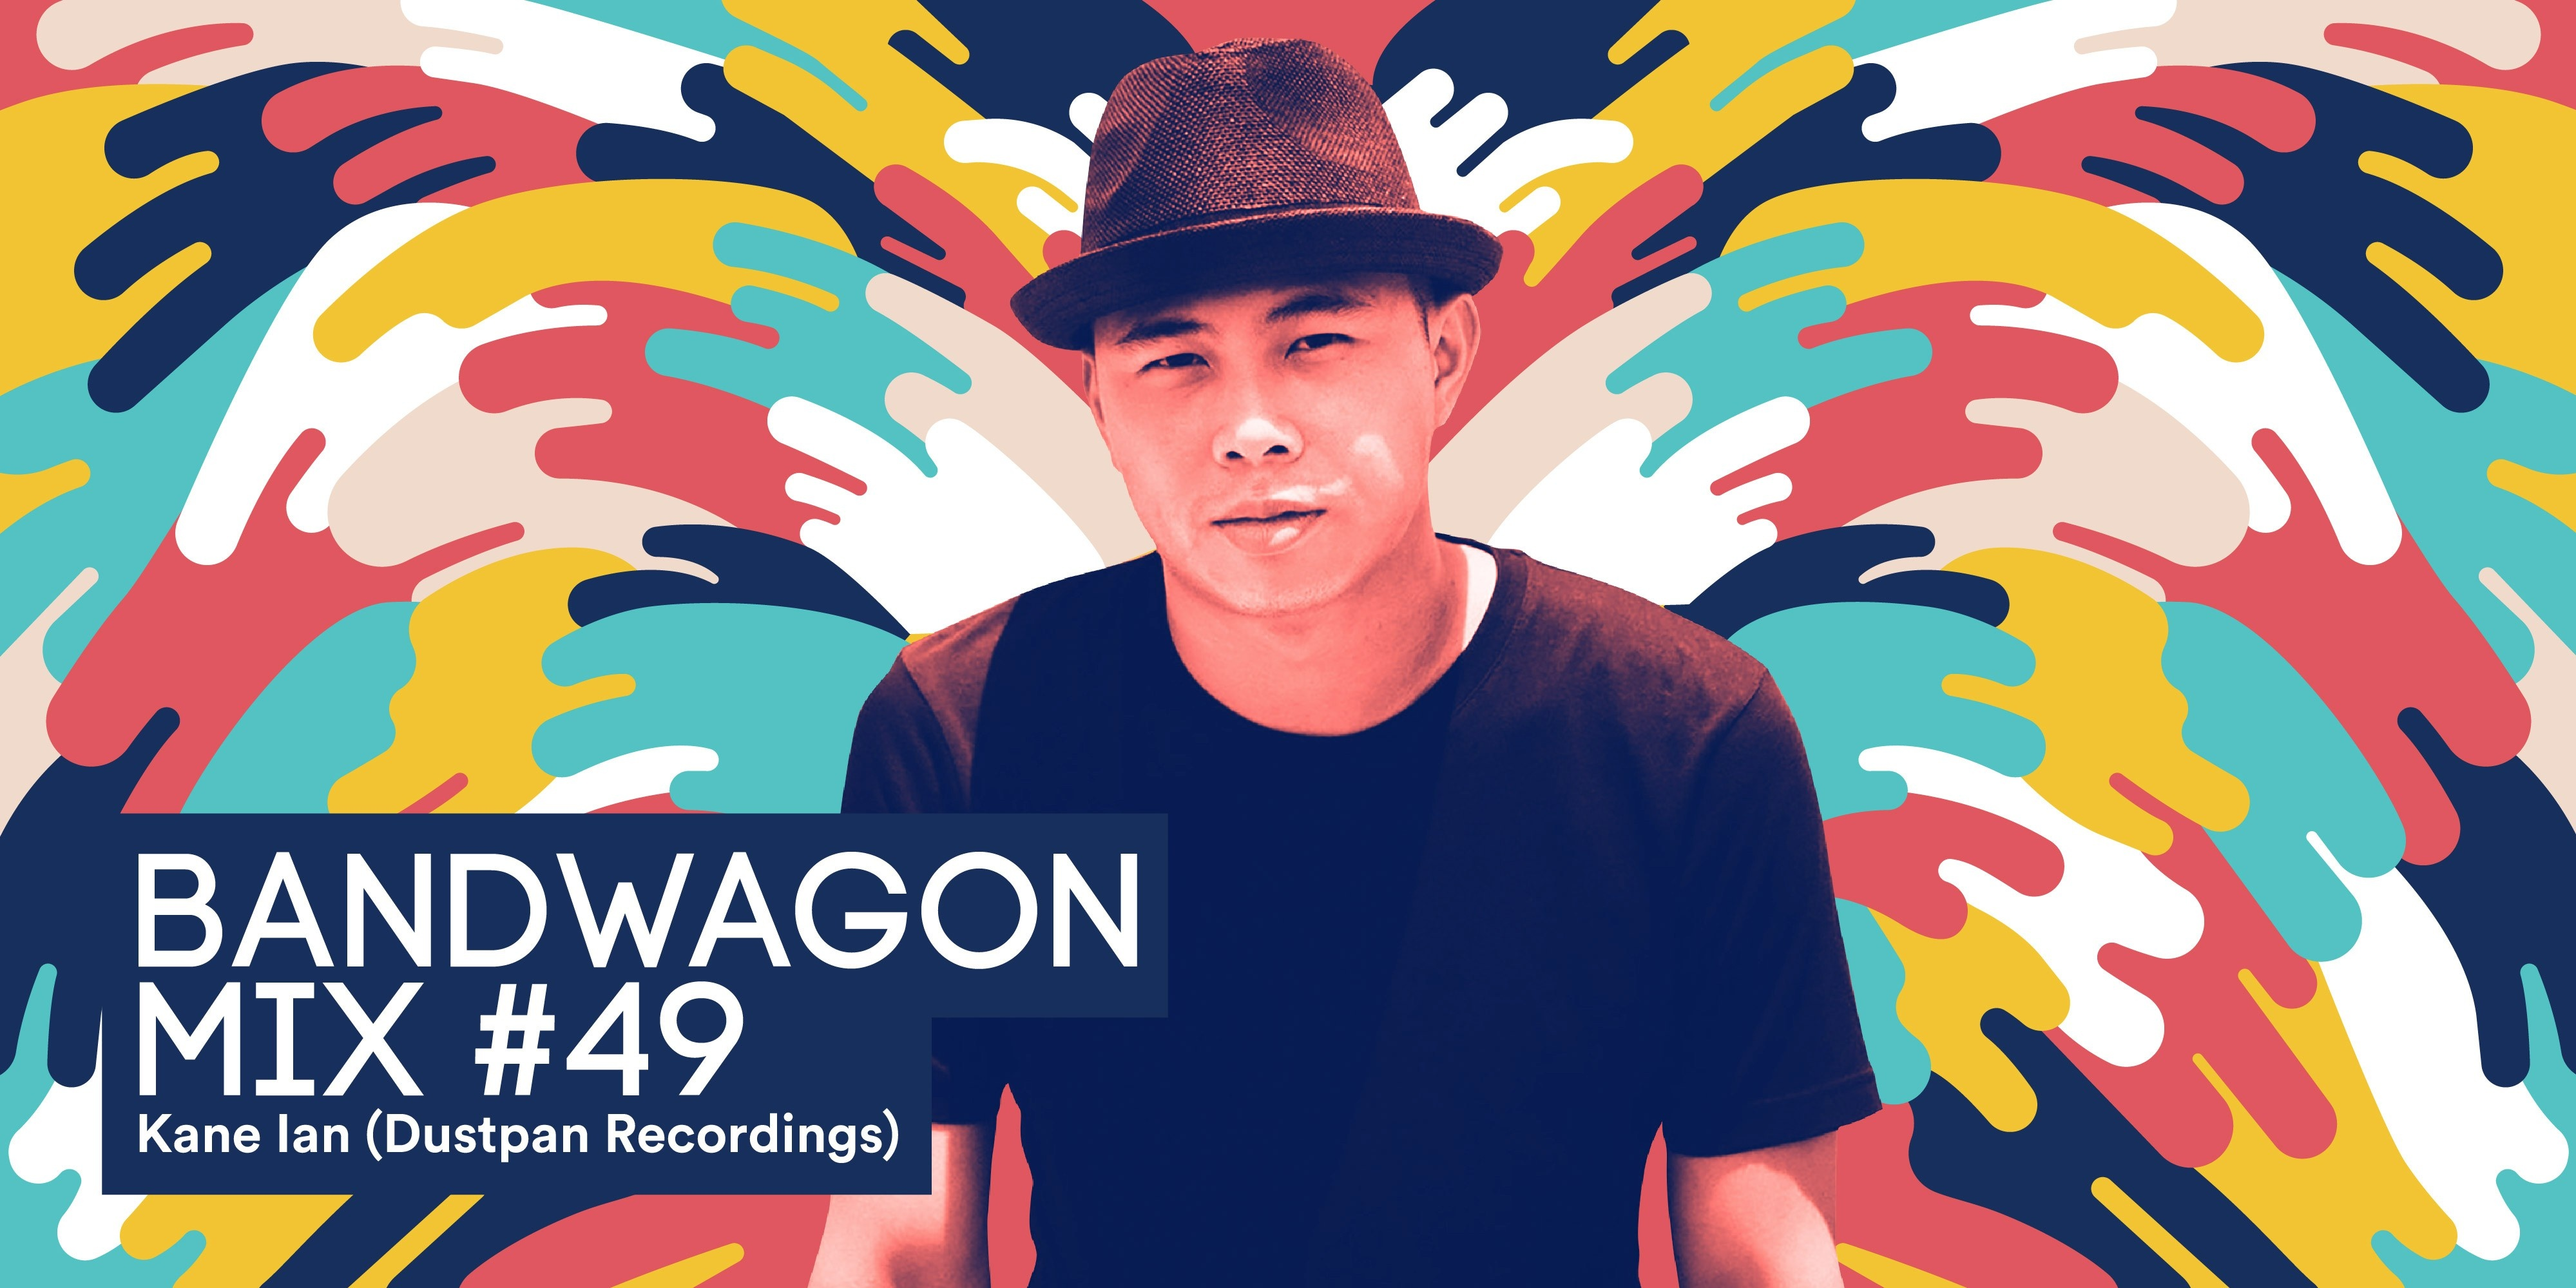 Bandwagon Mix #49: Kane Ian (Dustpan Recordings)